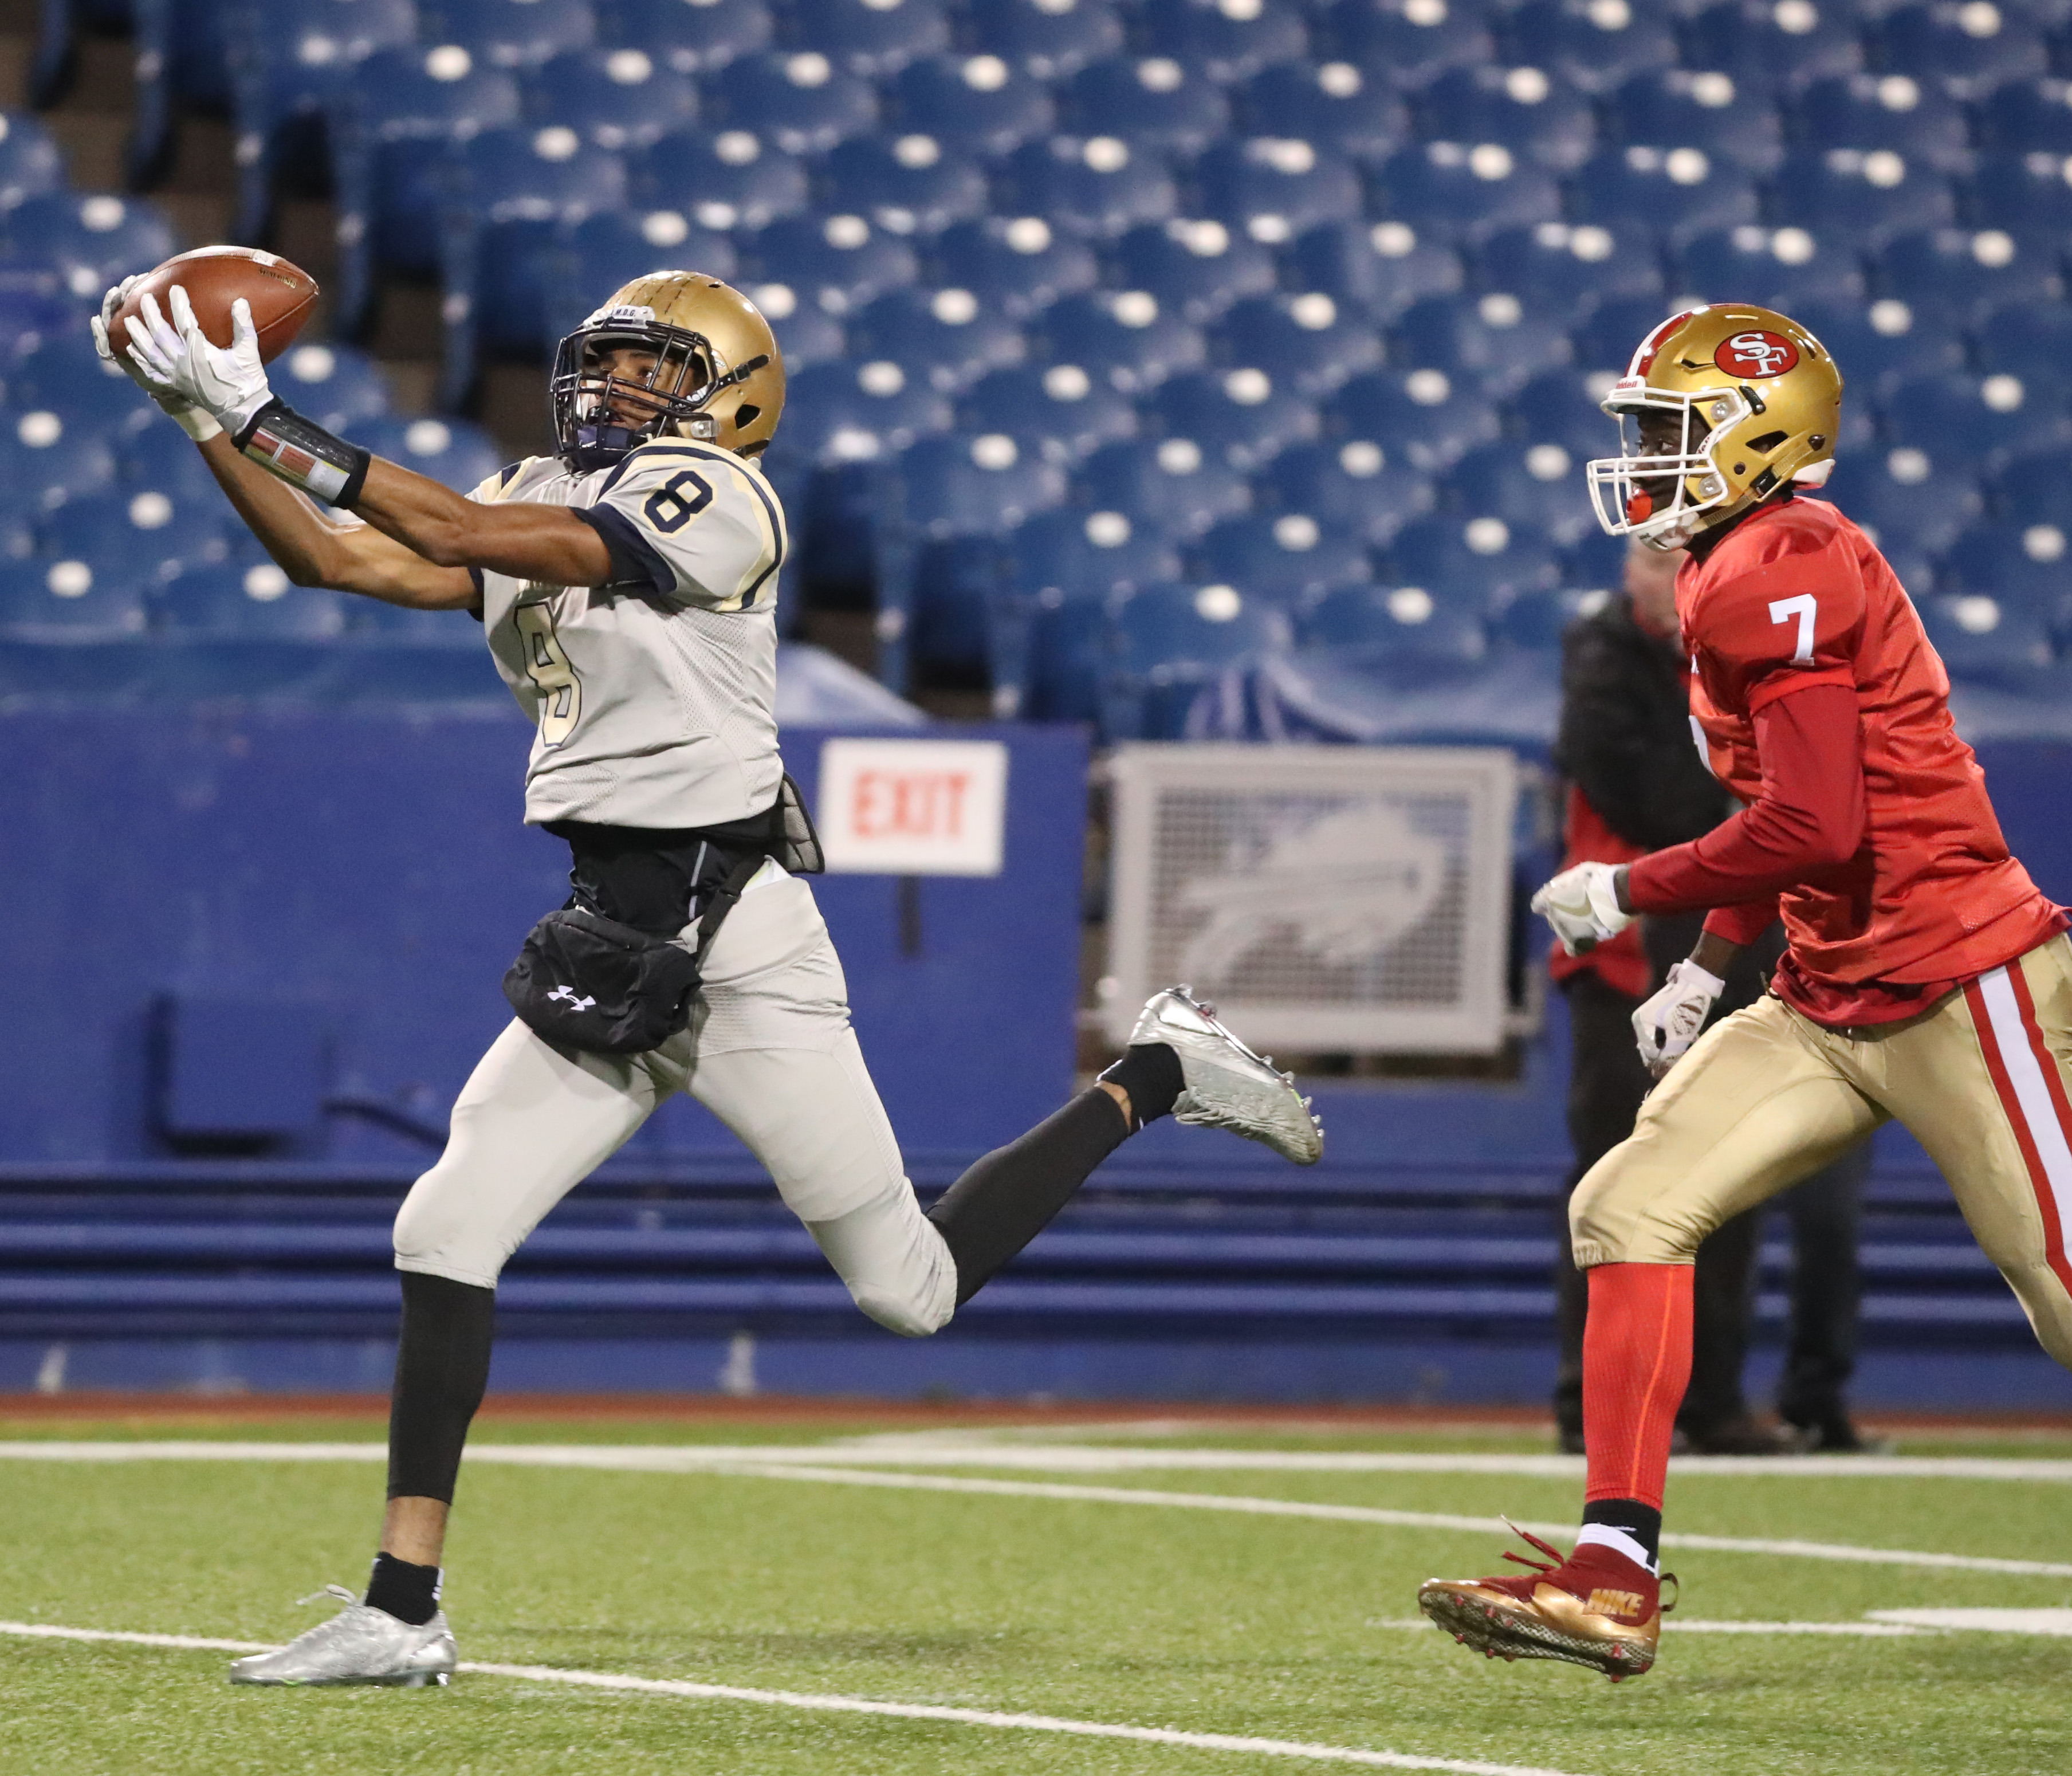 Paul Woods hauls in a 43-yard reception that led to Canisius first touchdown during the Crusaders triumph over St. Francis in the Monsignor Martin High School Athletic Association championship game at New Era Field. (James P. McCoy/Buffalo News)